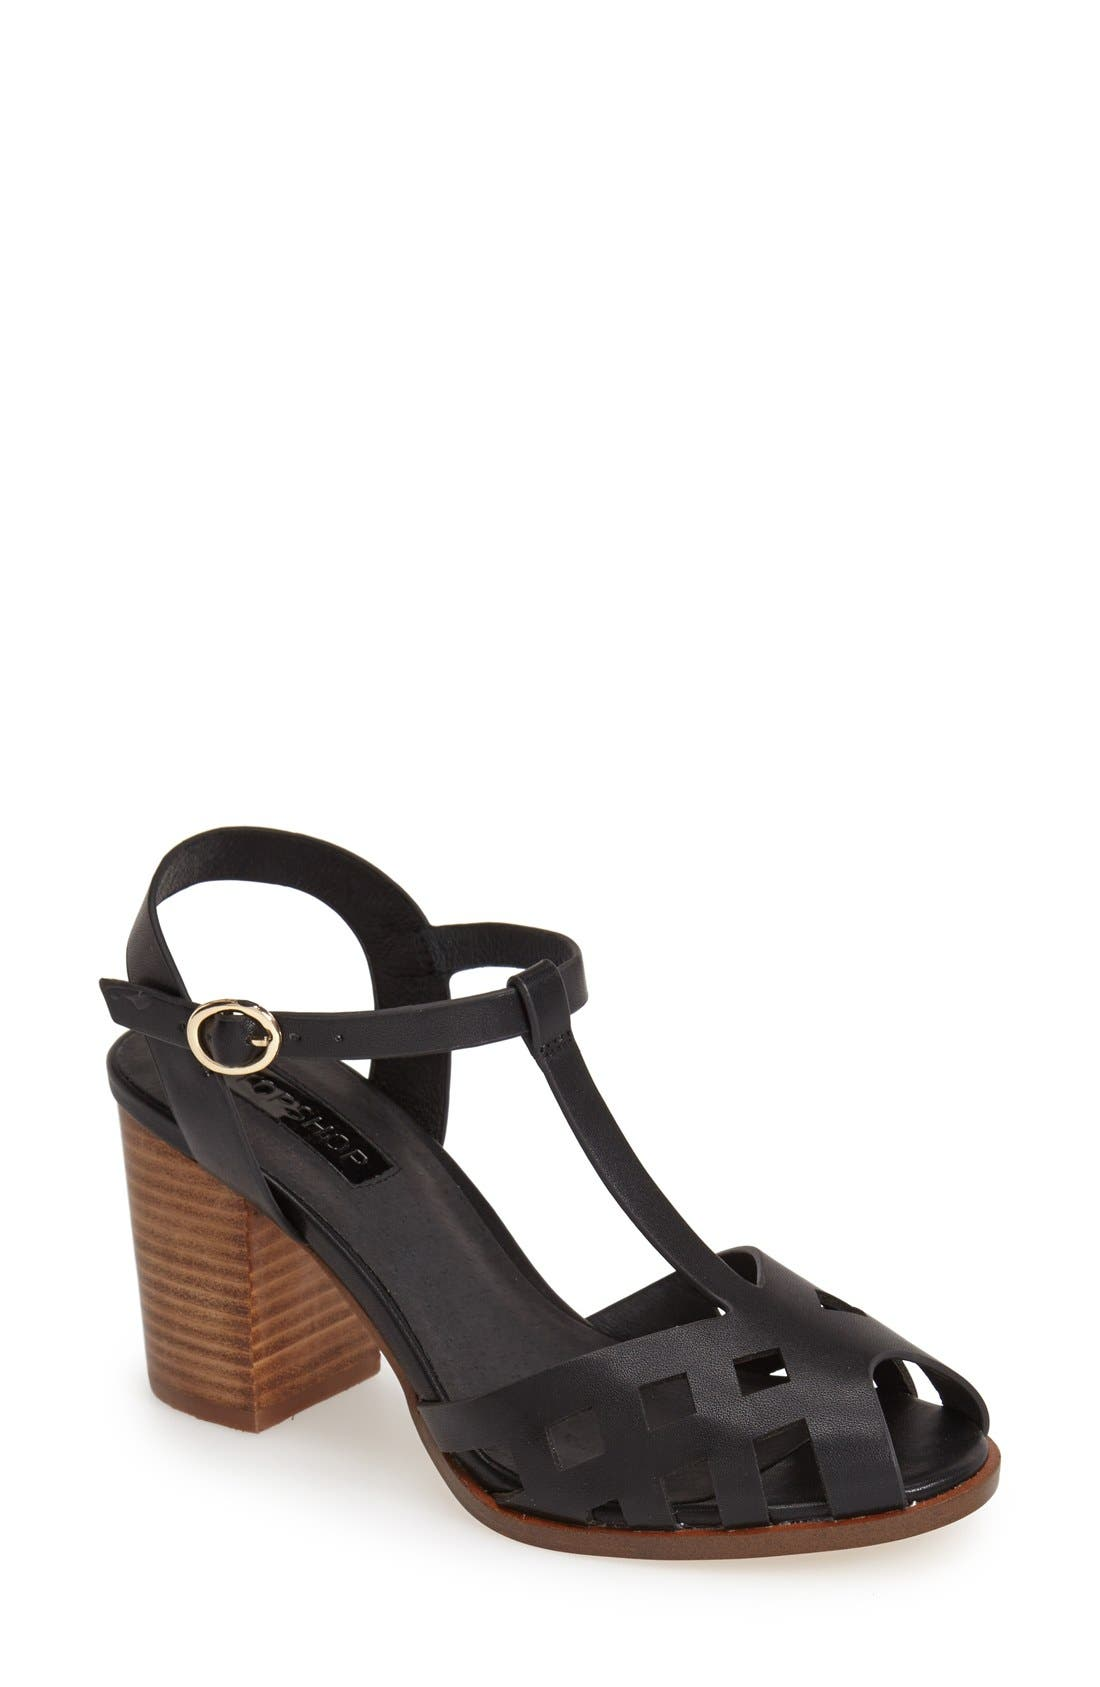 Alternate Image 1 Selected - Topshop 'Newlywed' T-Strap Peep Toe Sandal (Women)